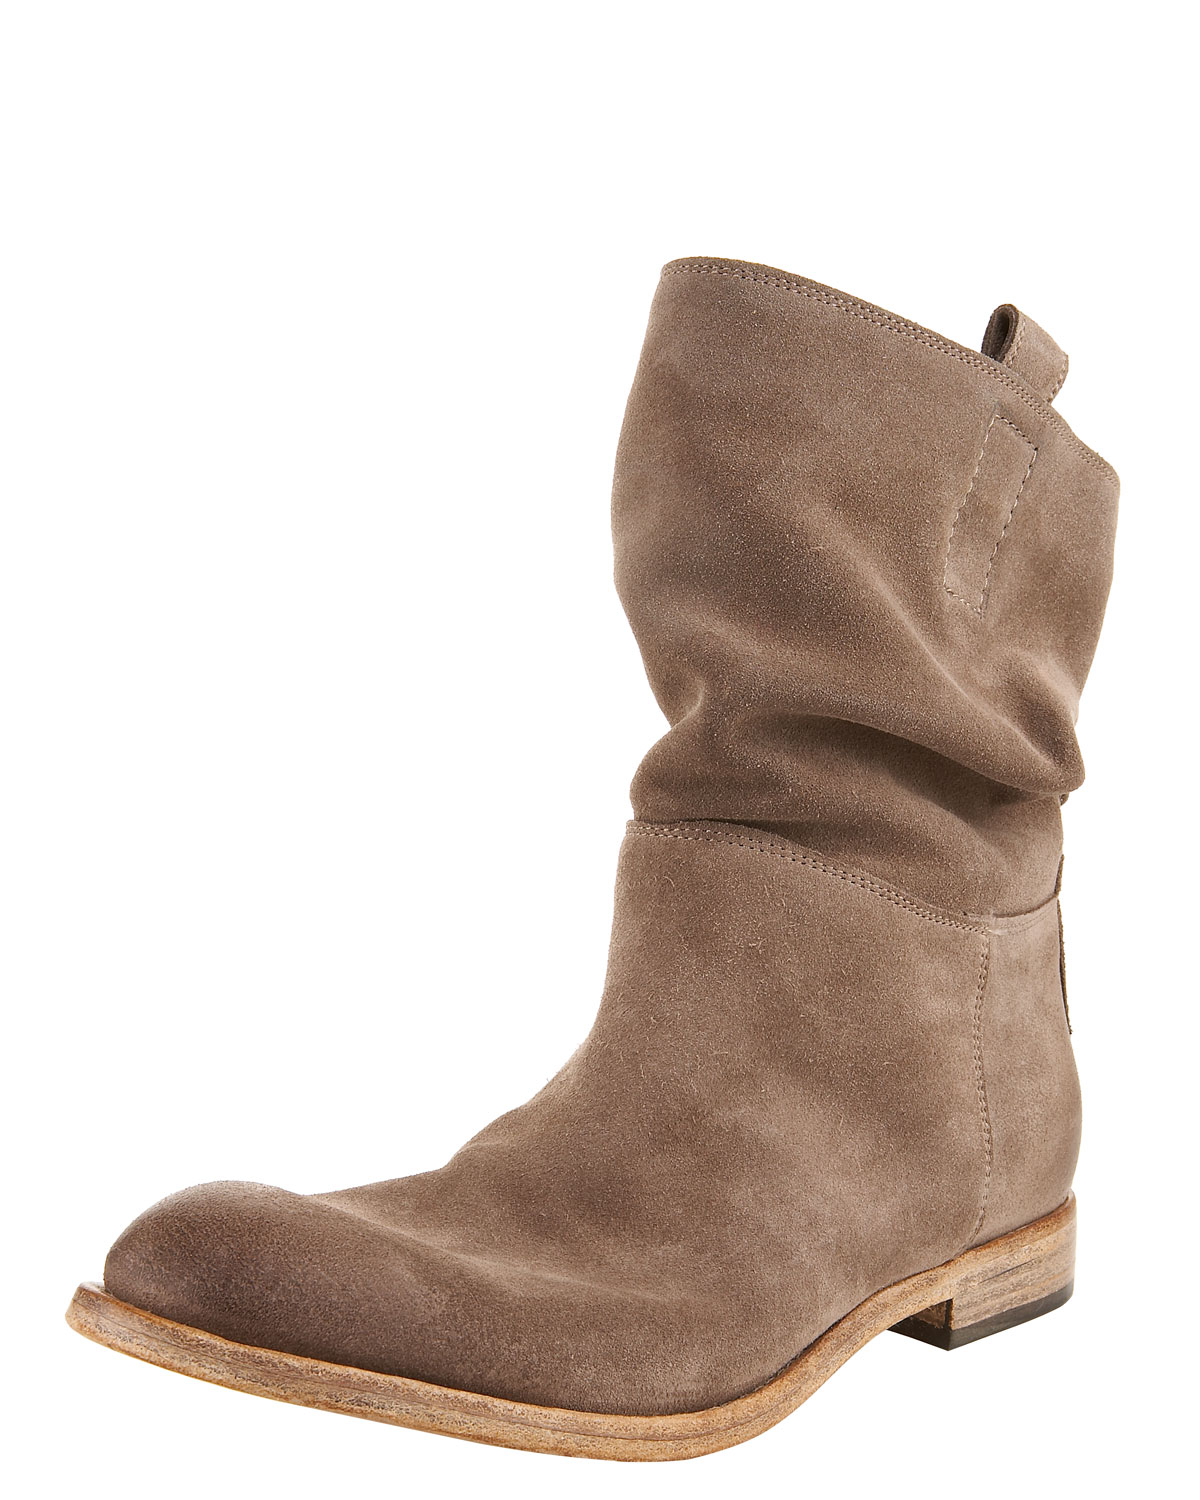 alberto fermani slouchy suede ankle boot in brown lyst